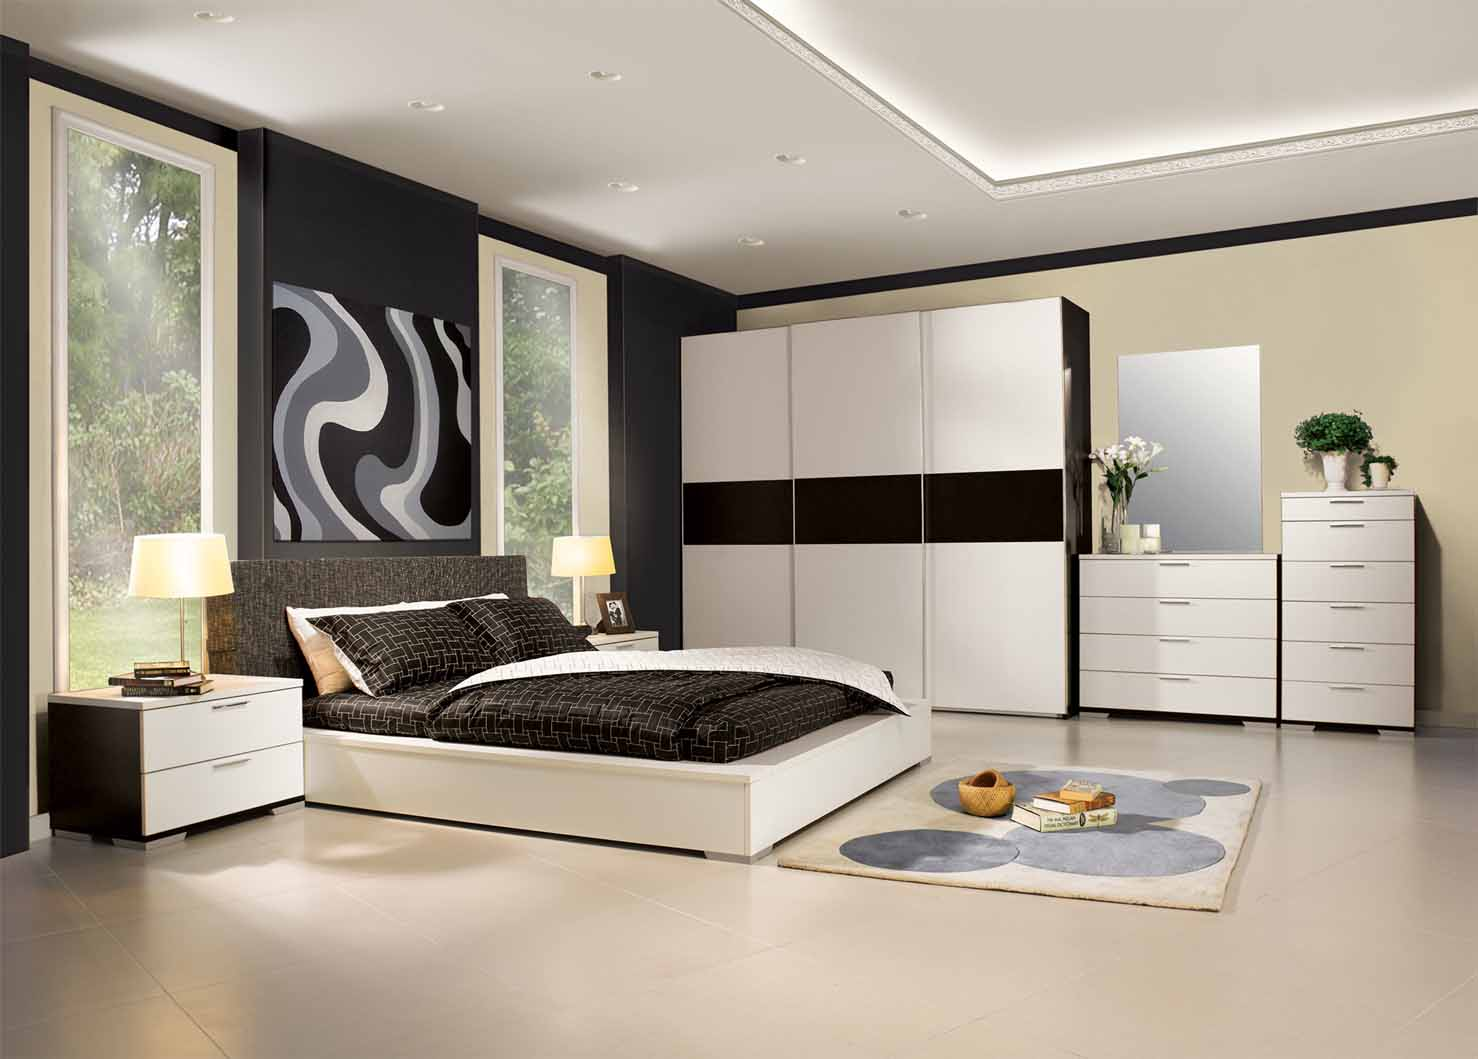 Modern bedroom design fouadtalal Bedroom design